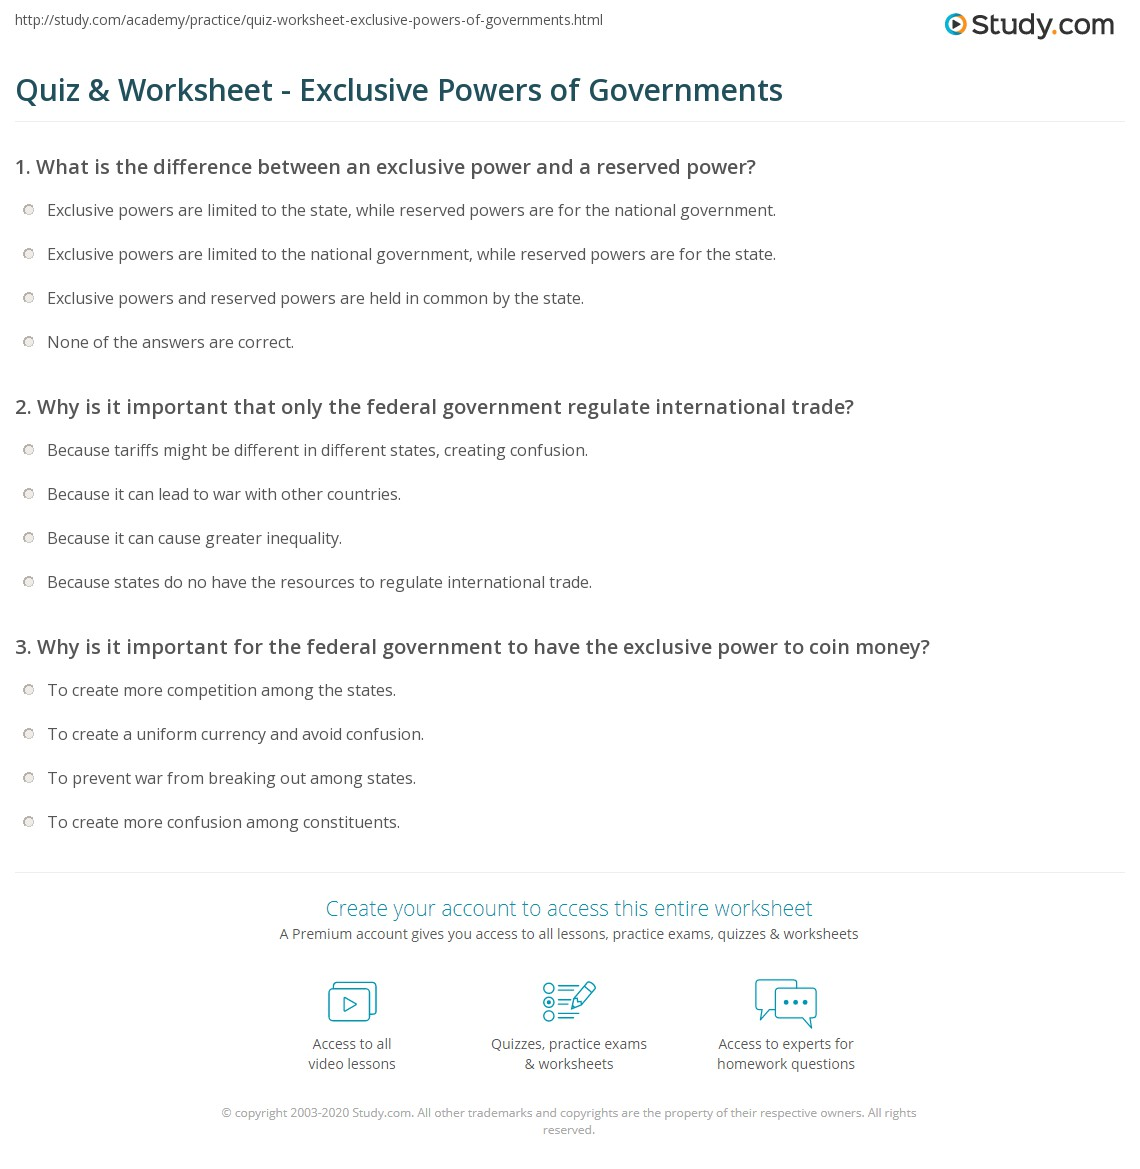 quiz worksheet exclusive powers of governments. Black Bedroom Furniture Sets. Home Design Ideas